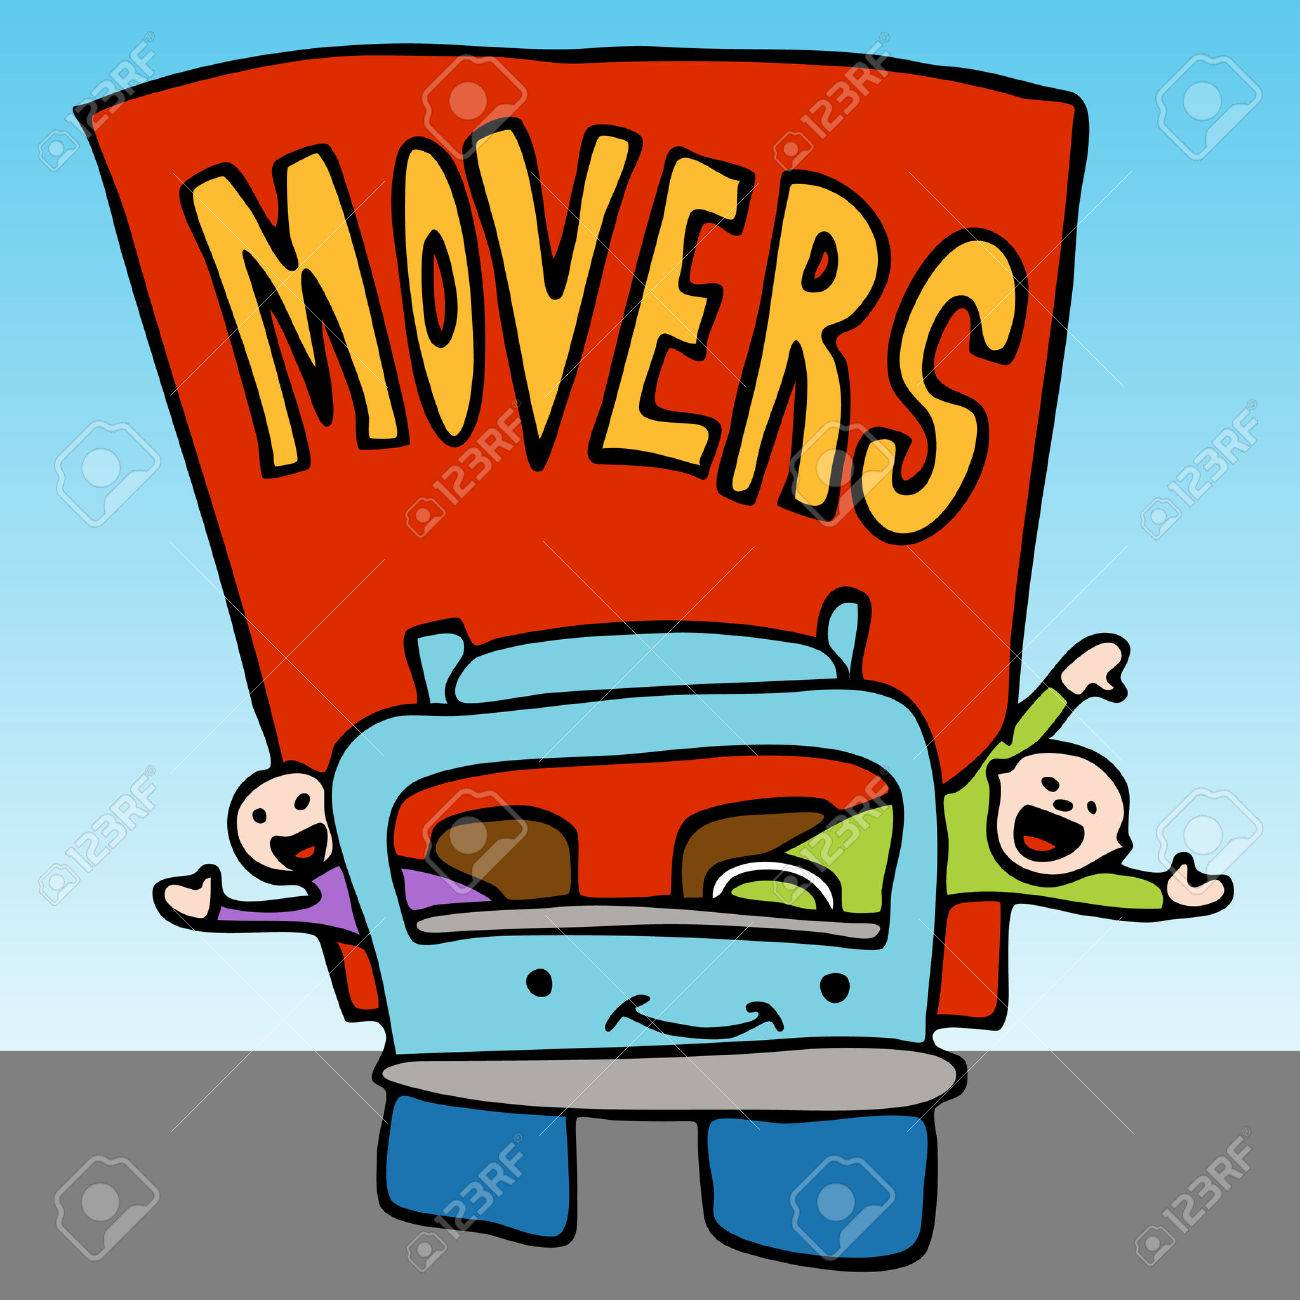 Image result for movers cartoon images